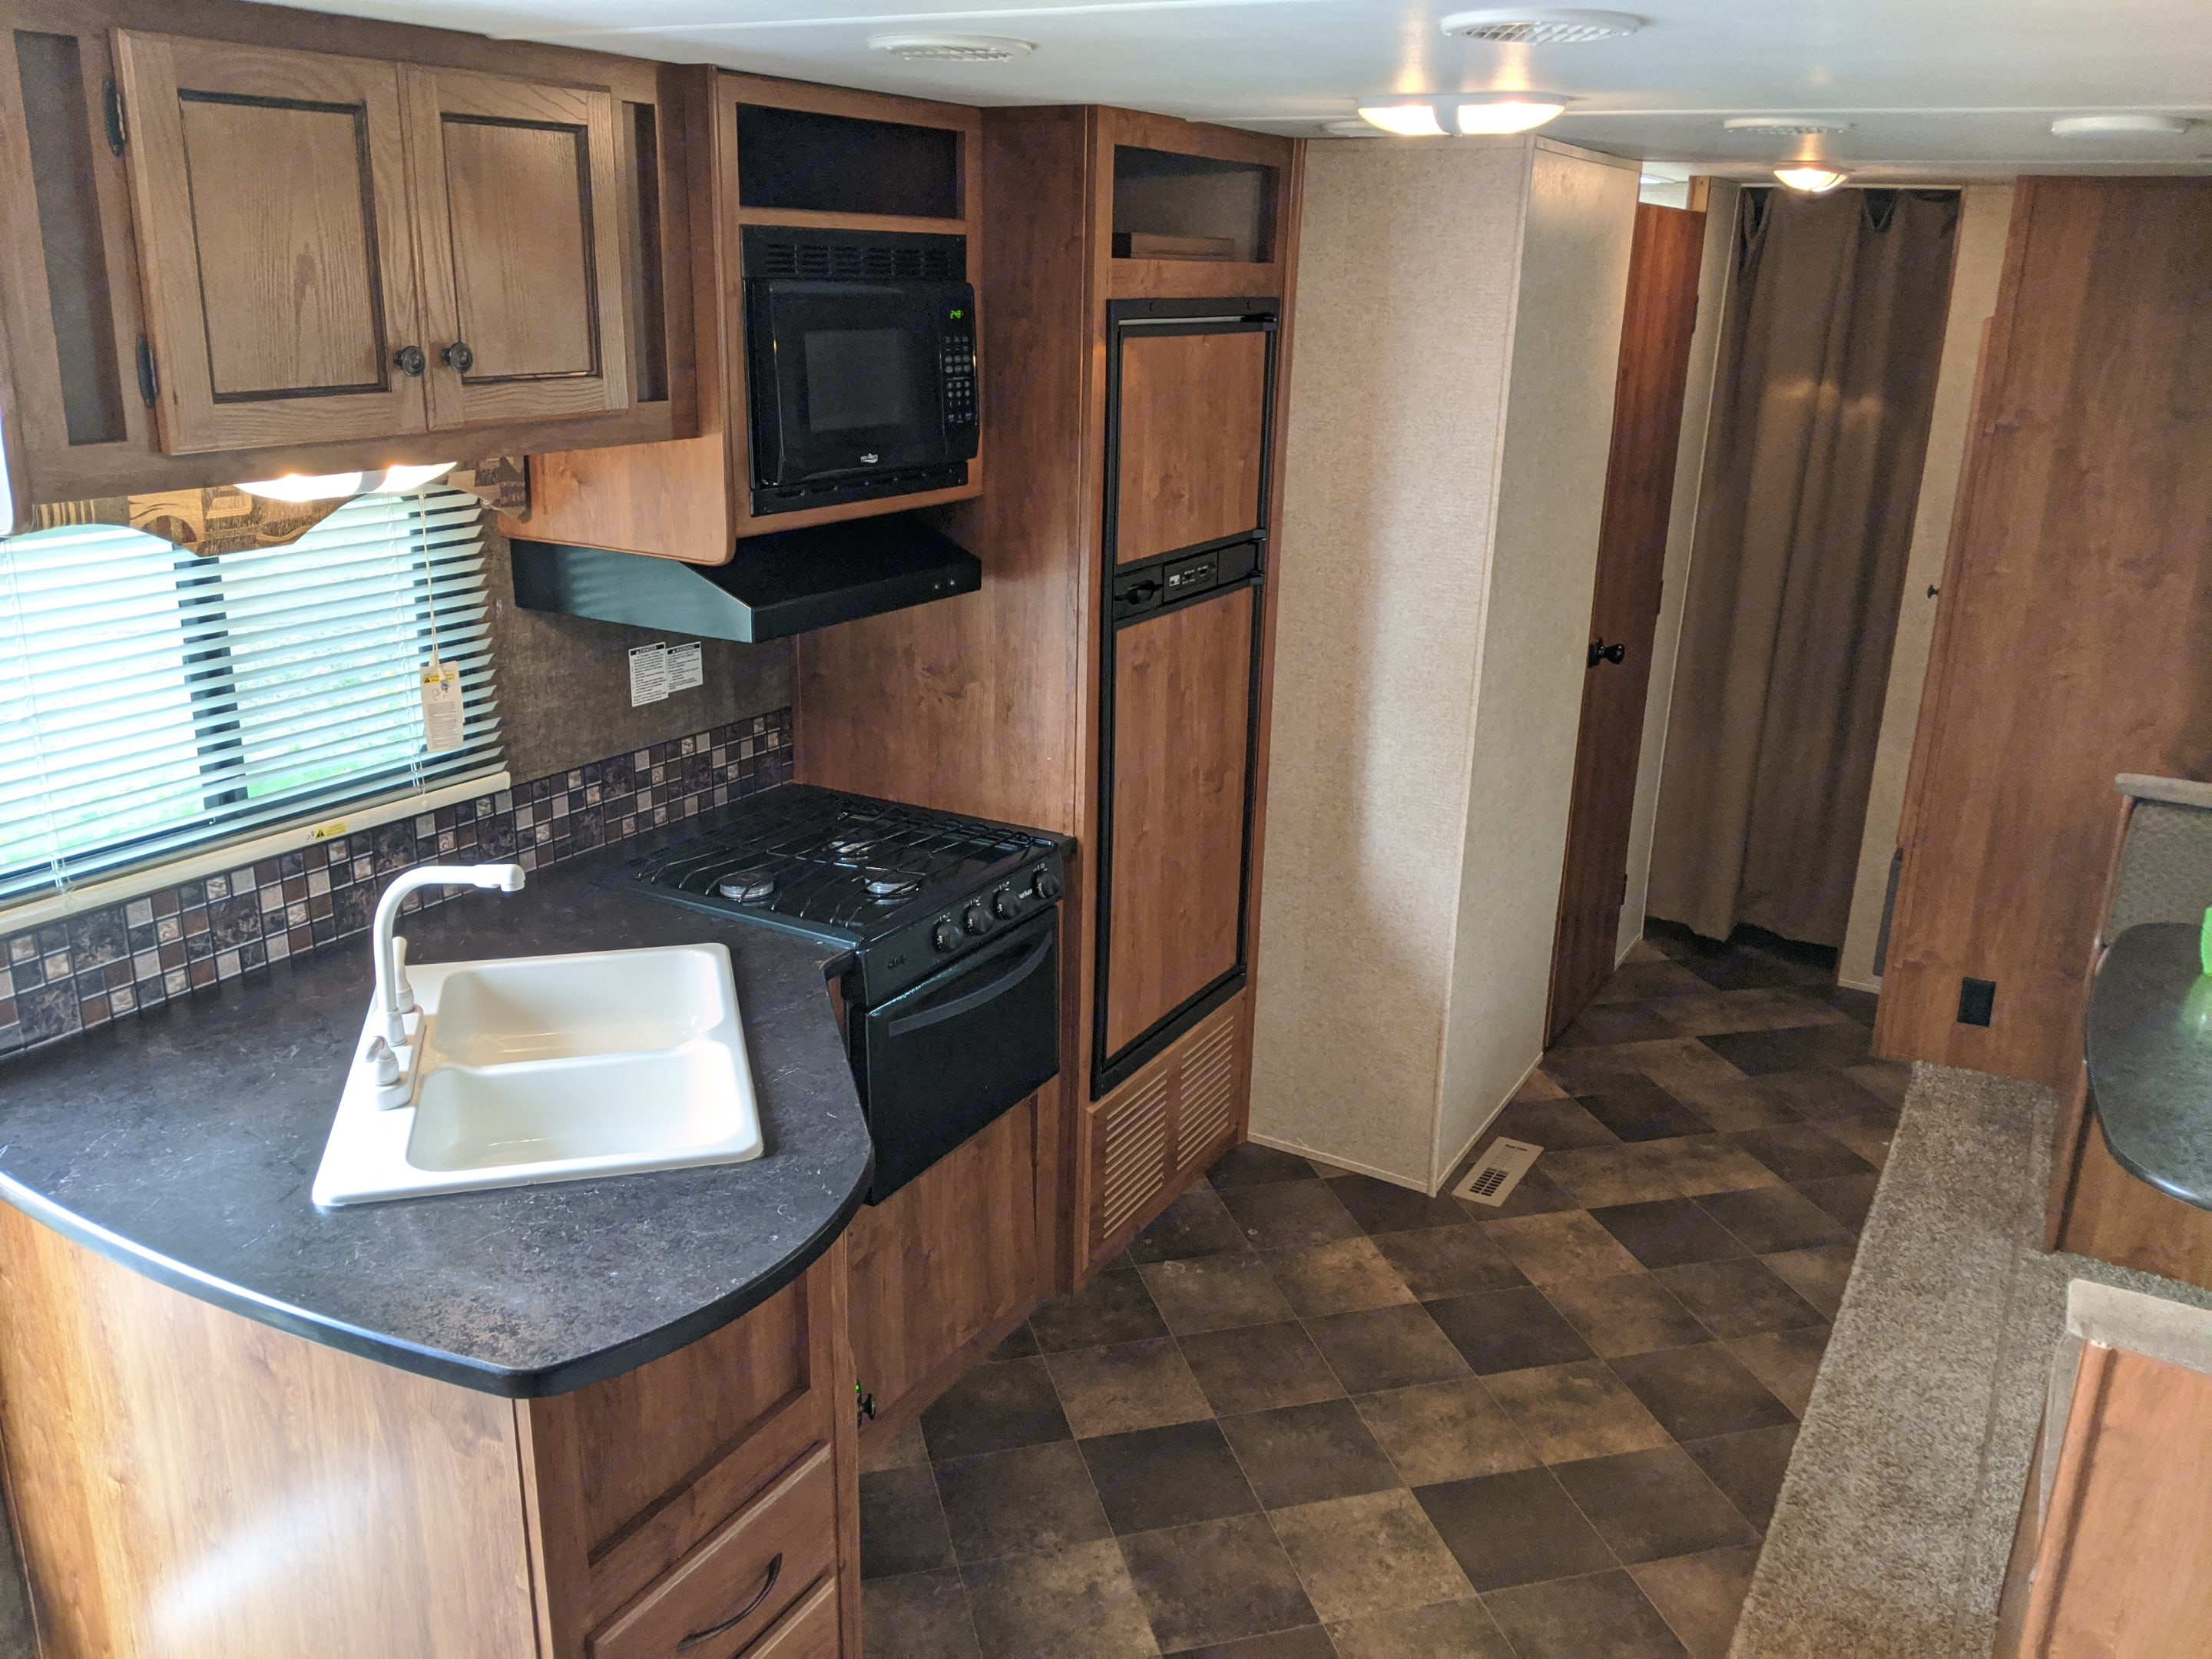 Everything you need except the food! Coffee maker, microwave, range, oven, fridge & freezer. Dishes, silverware, utensils, cups all included. . Heartland Trail Runner 2014